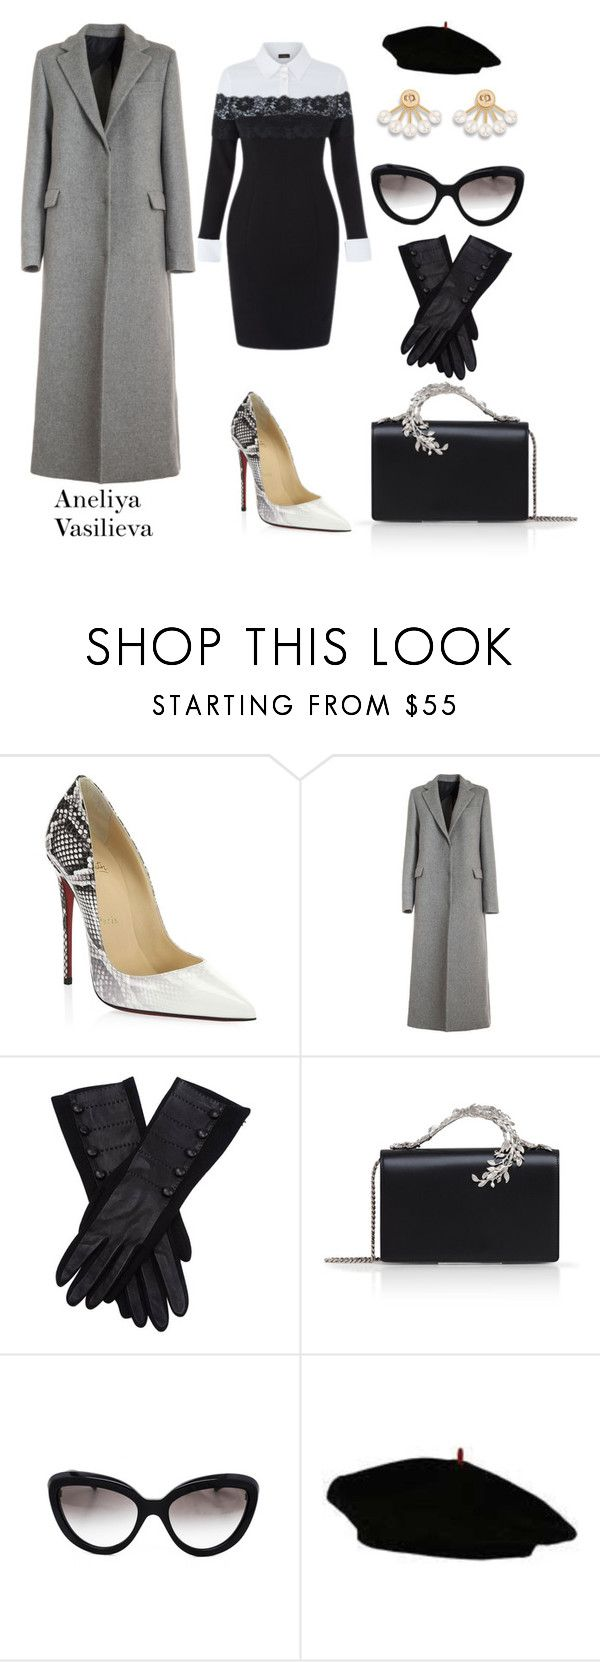 """""""Untitled #961"""" by aneliya-vasilieva-style ❤ liked on Polyvore featuring Christian Louboutin, MSGM, AGNELLE, Ralph & Russo and Prada"""